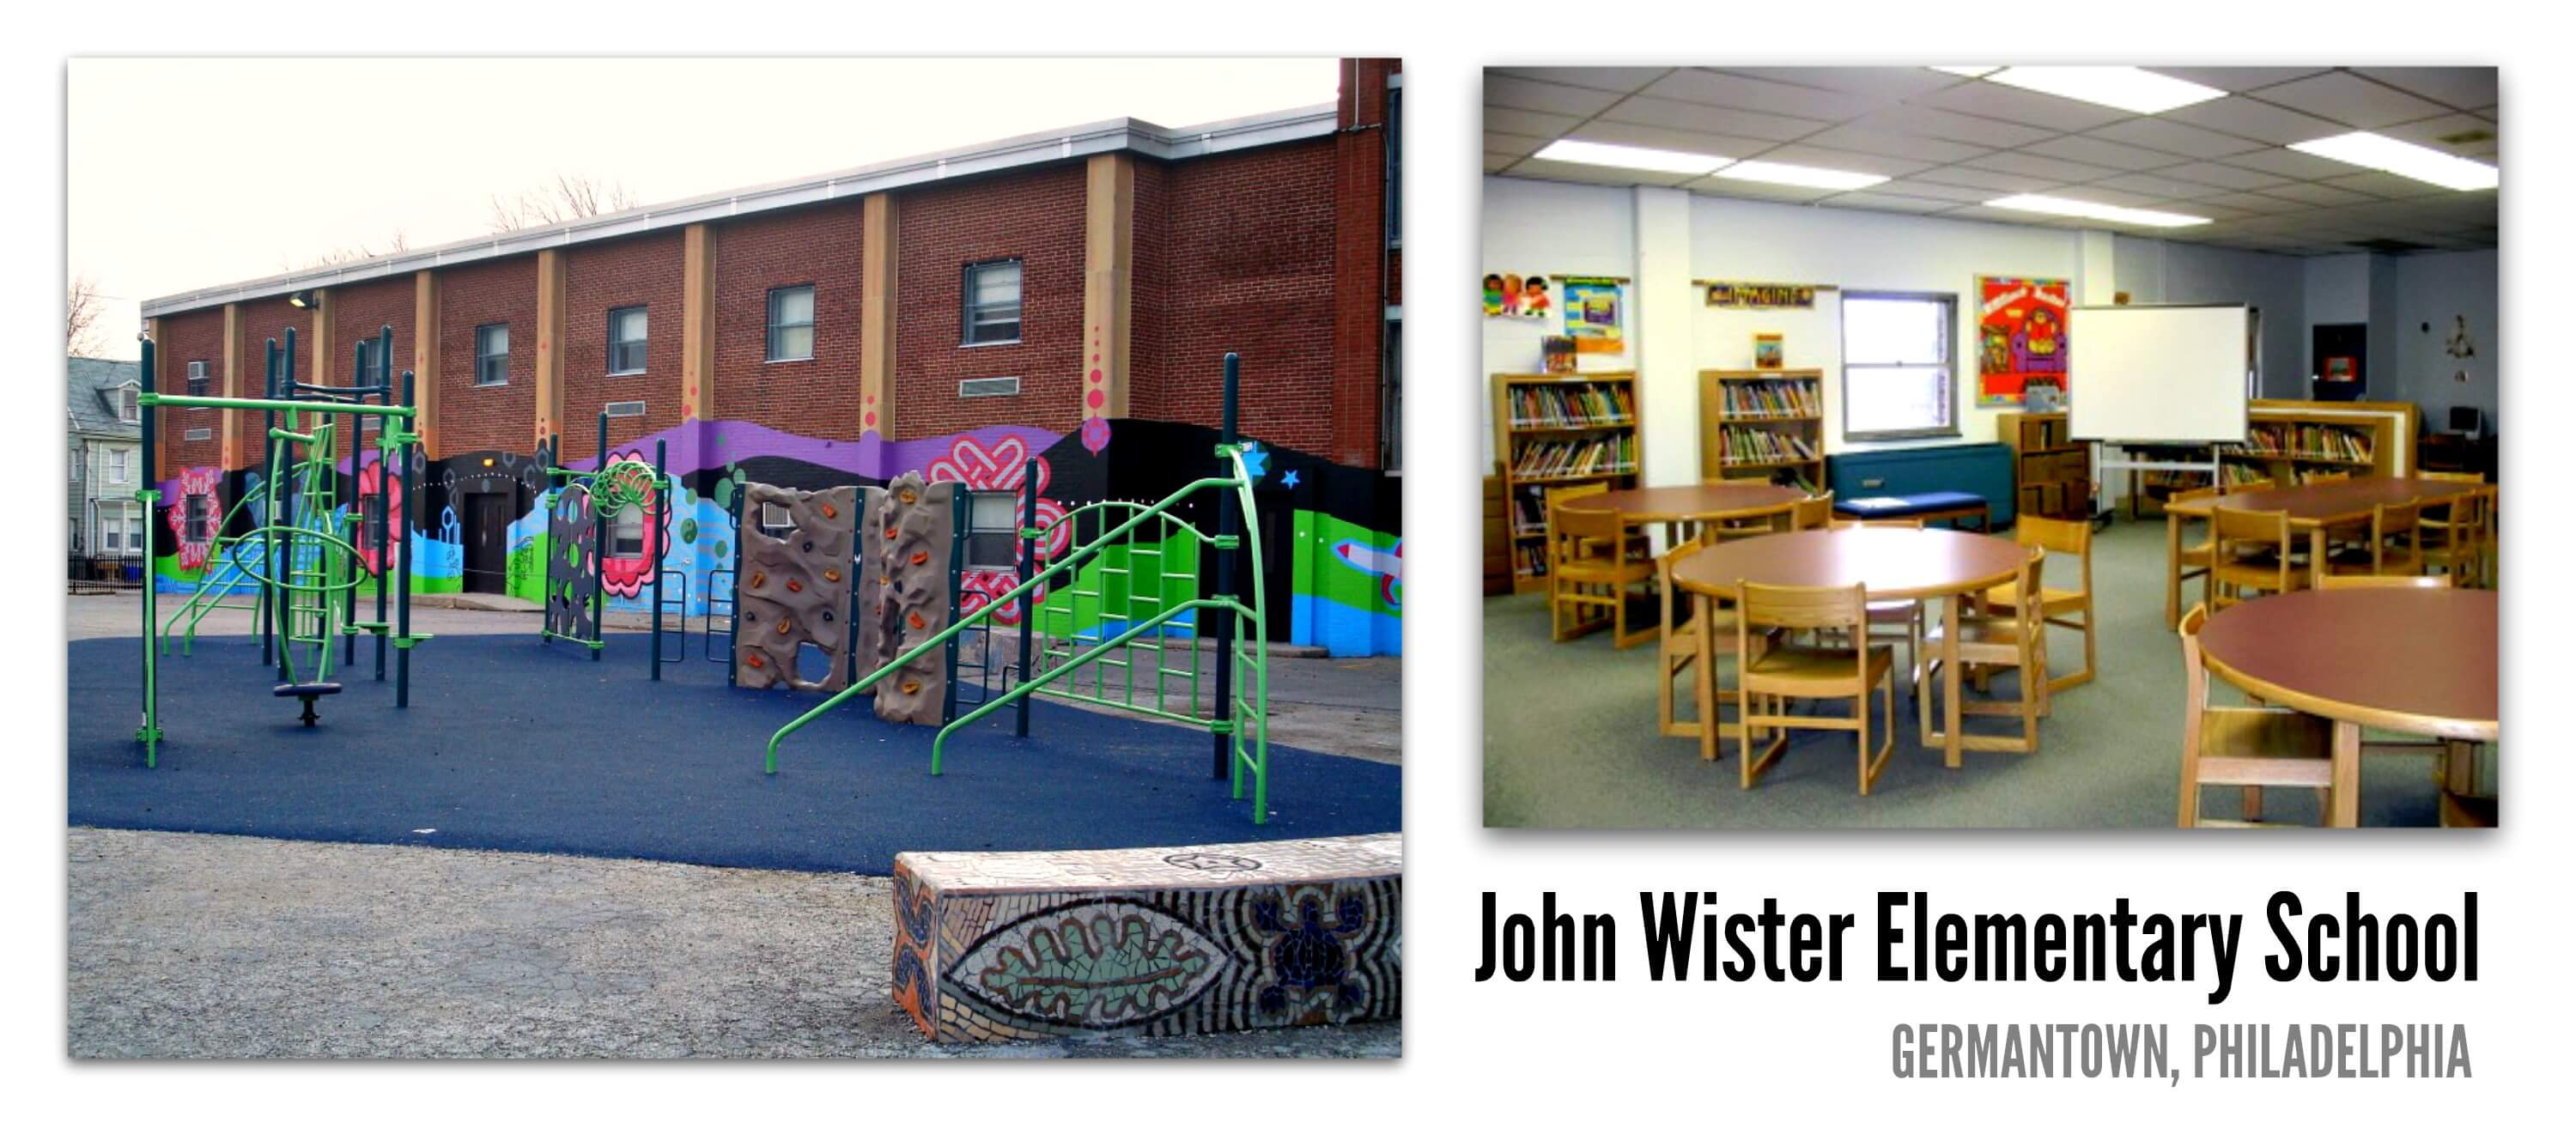 Eastfallslocal John Wister Elementary School collage